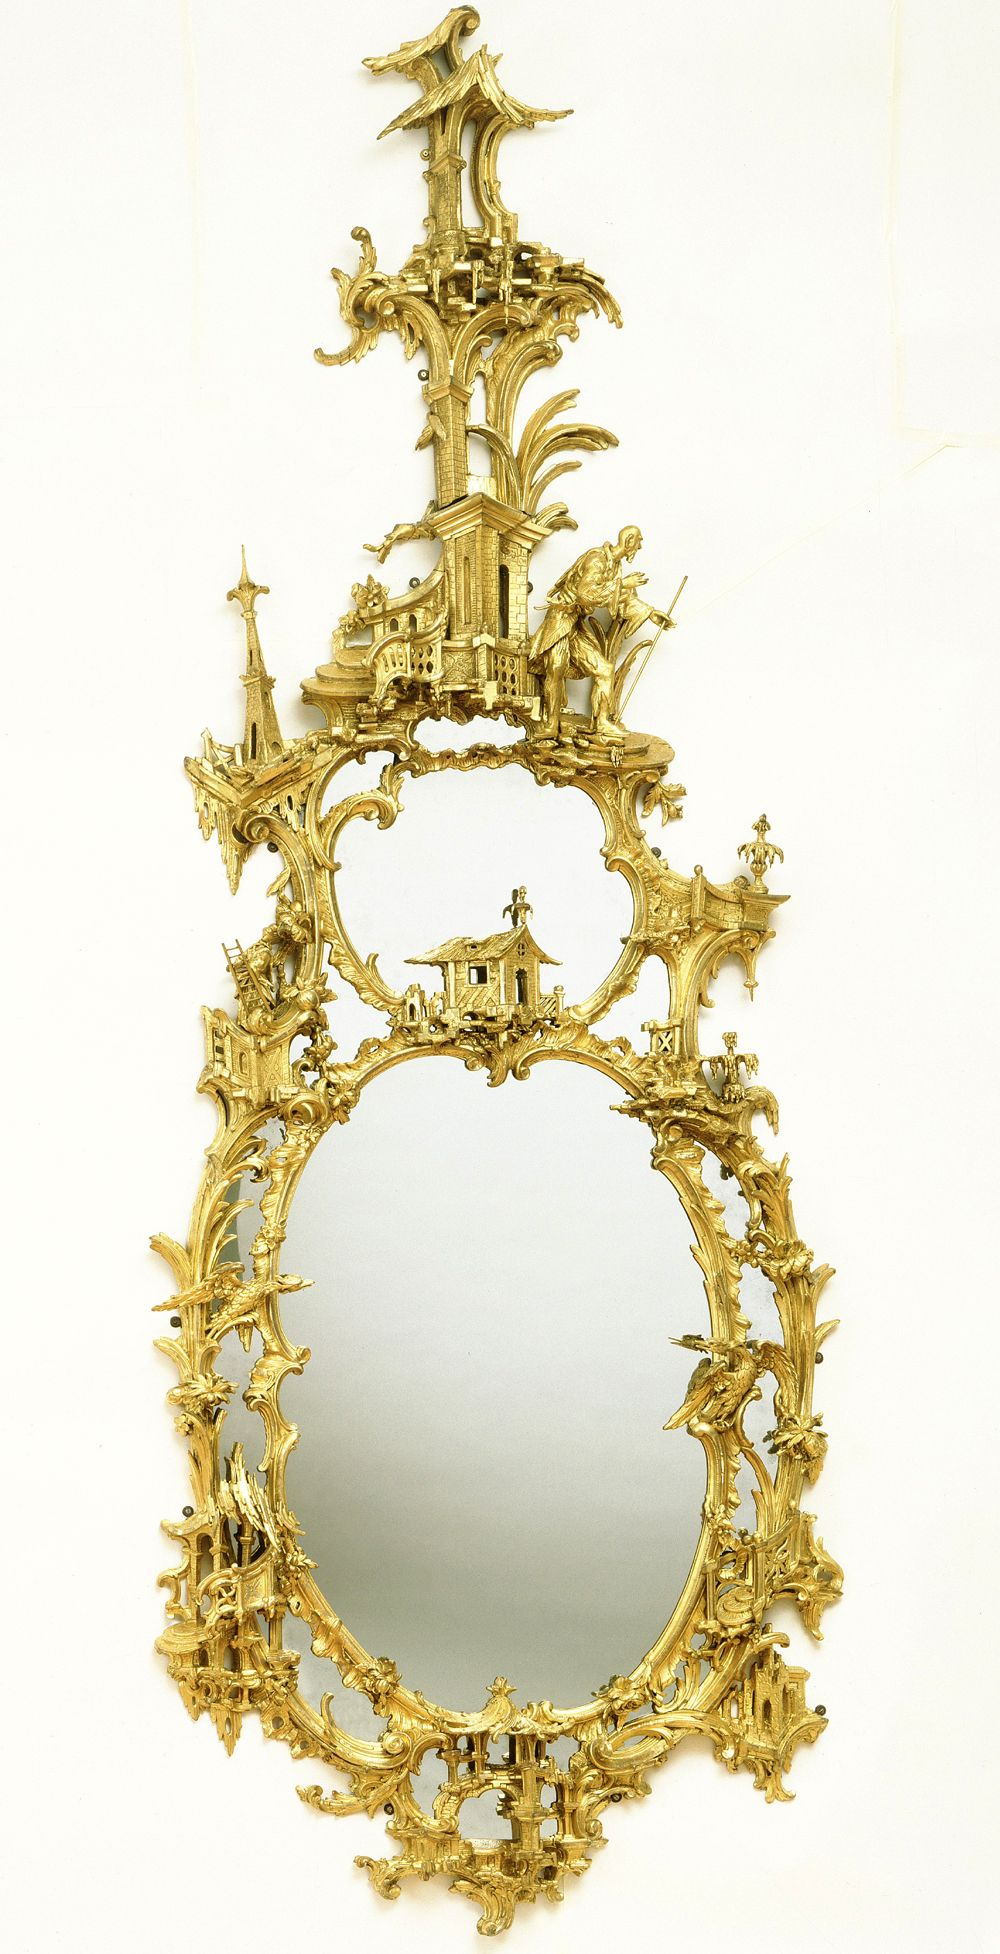 Chinoiserie mirror; Carved and gilded, c. 1750-60, Thomas Johnson. via Victoria and Albert Museum